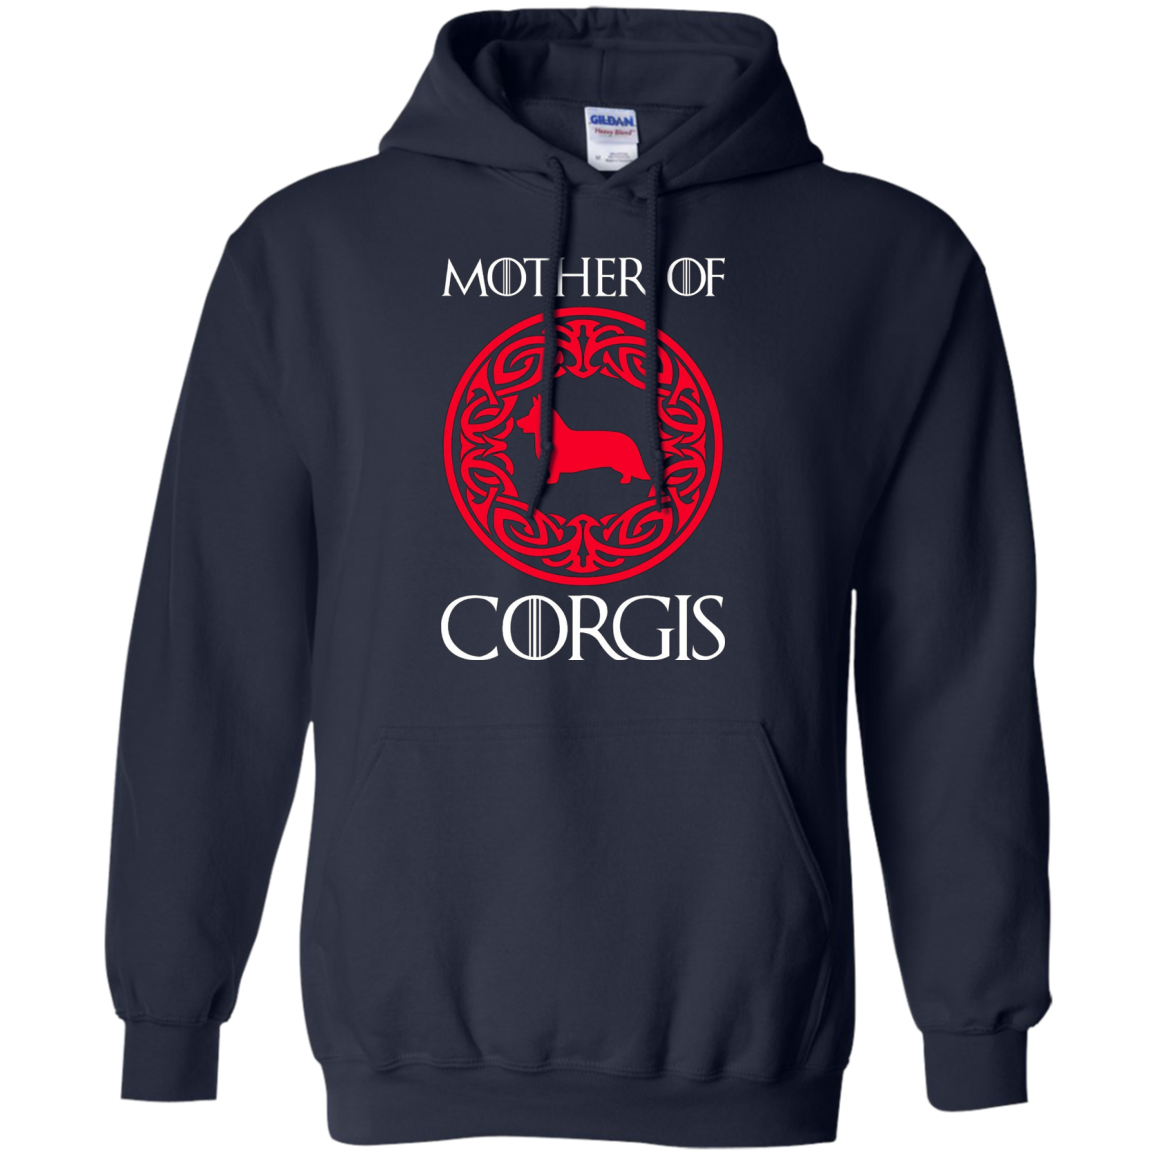 Mother of Corgis Shirt - Corgi Dog Shirt